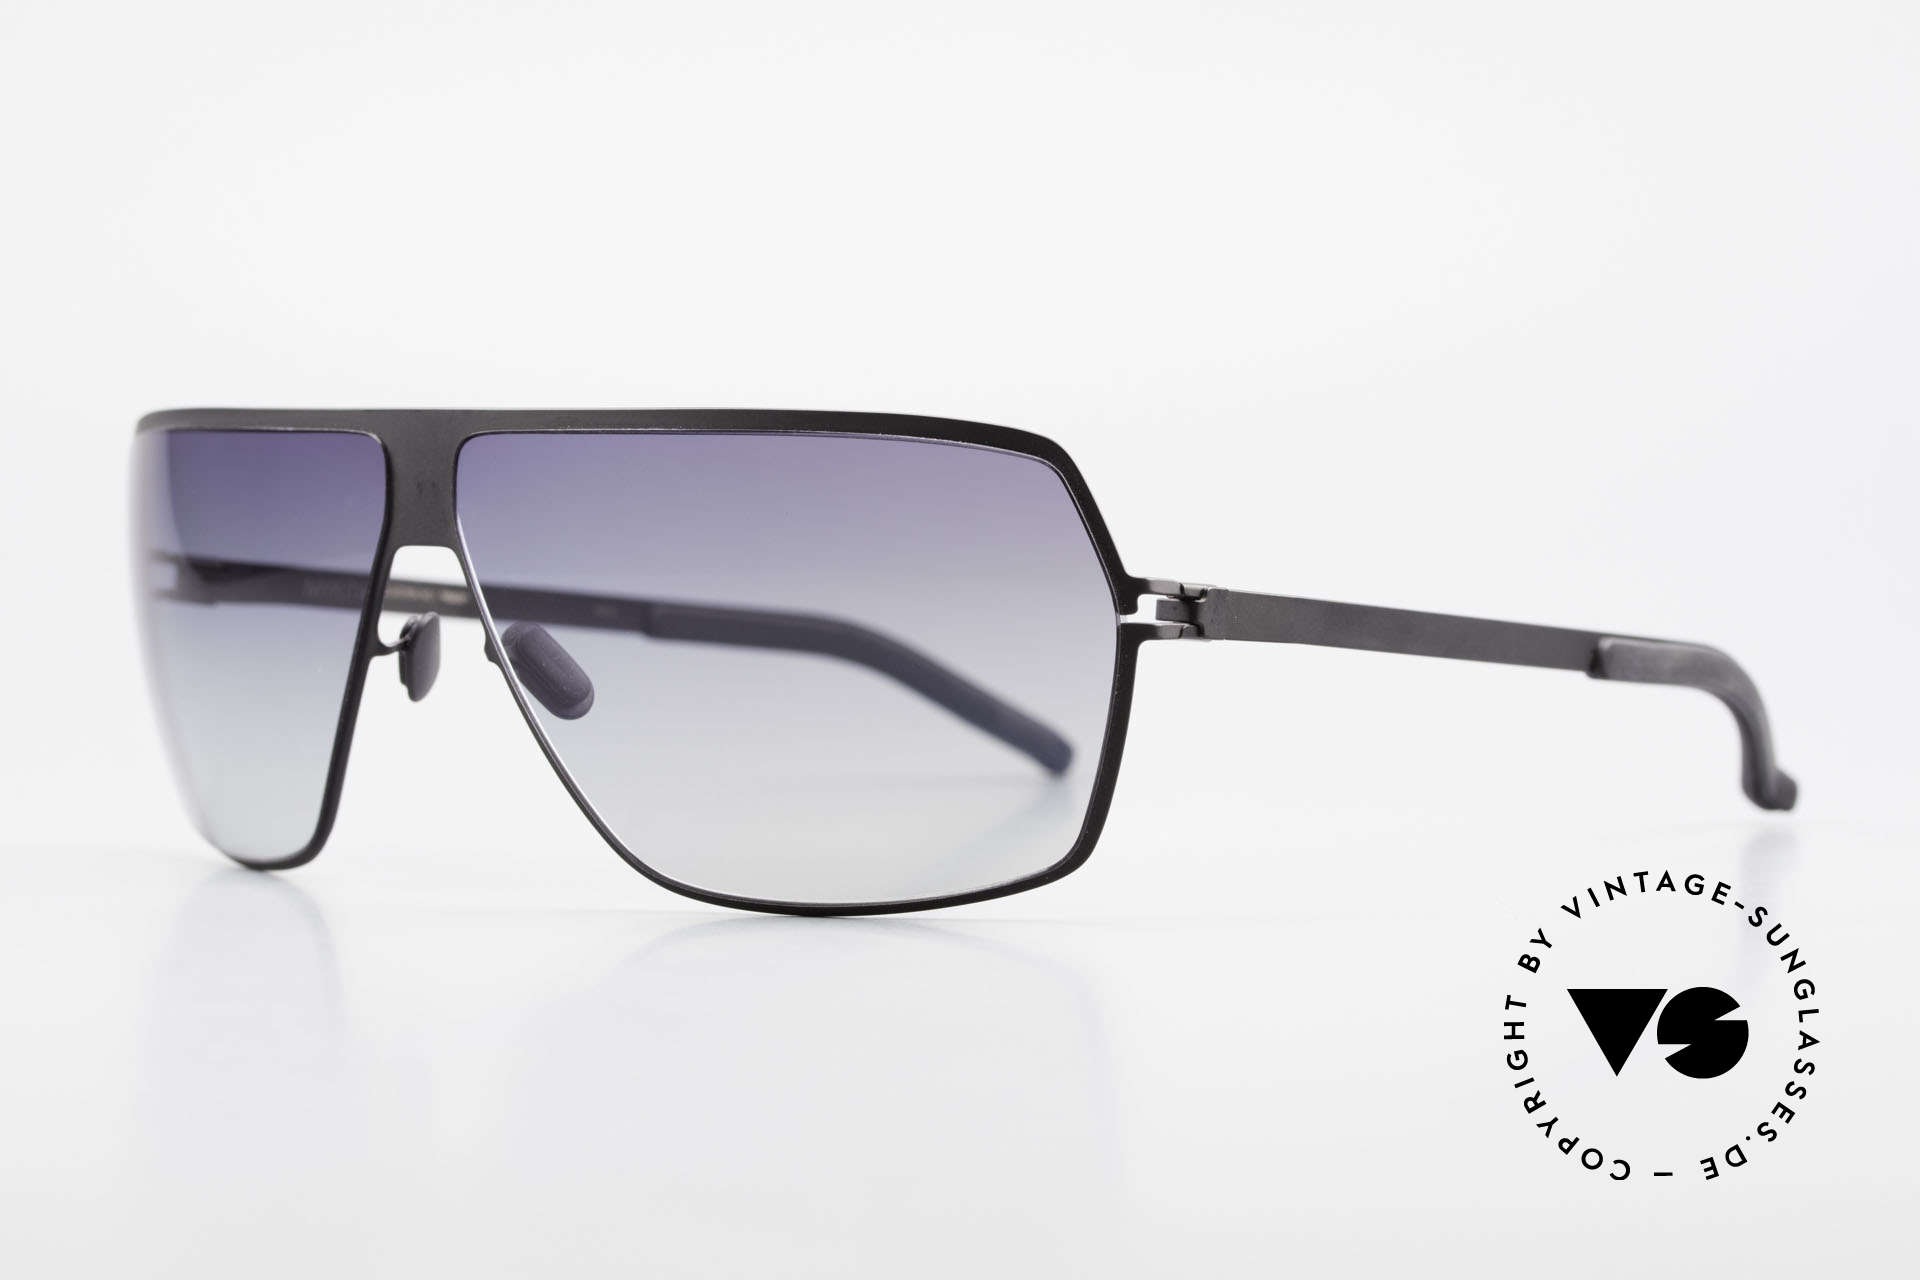 Mykita Rock No1 Men's Sunglasses 2009, Model No.1 Rock Black, black-gradient, in L size 67/09, Made for Men